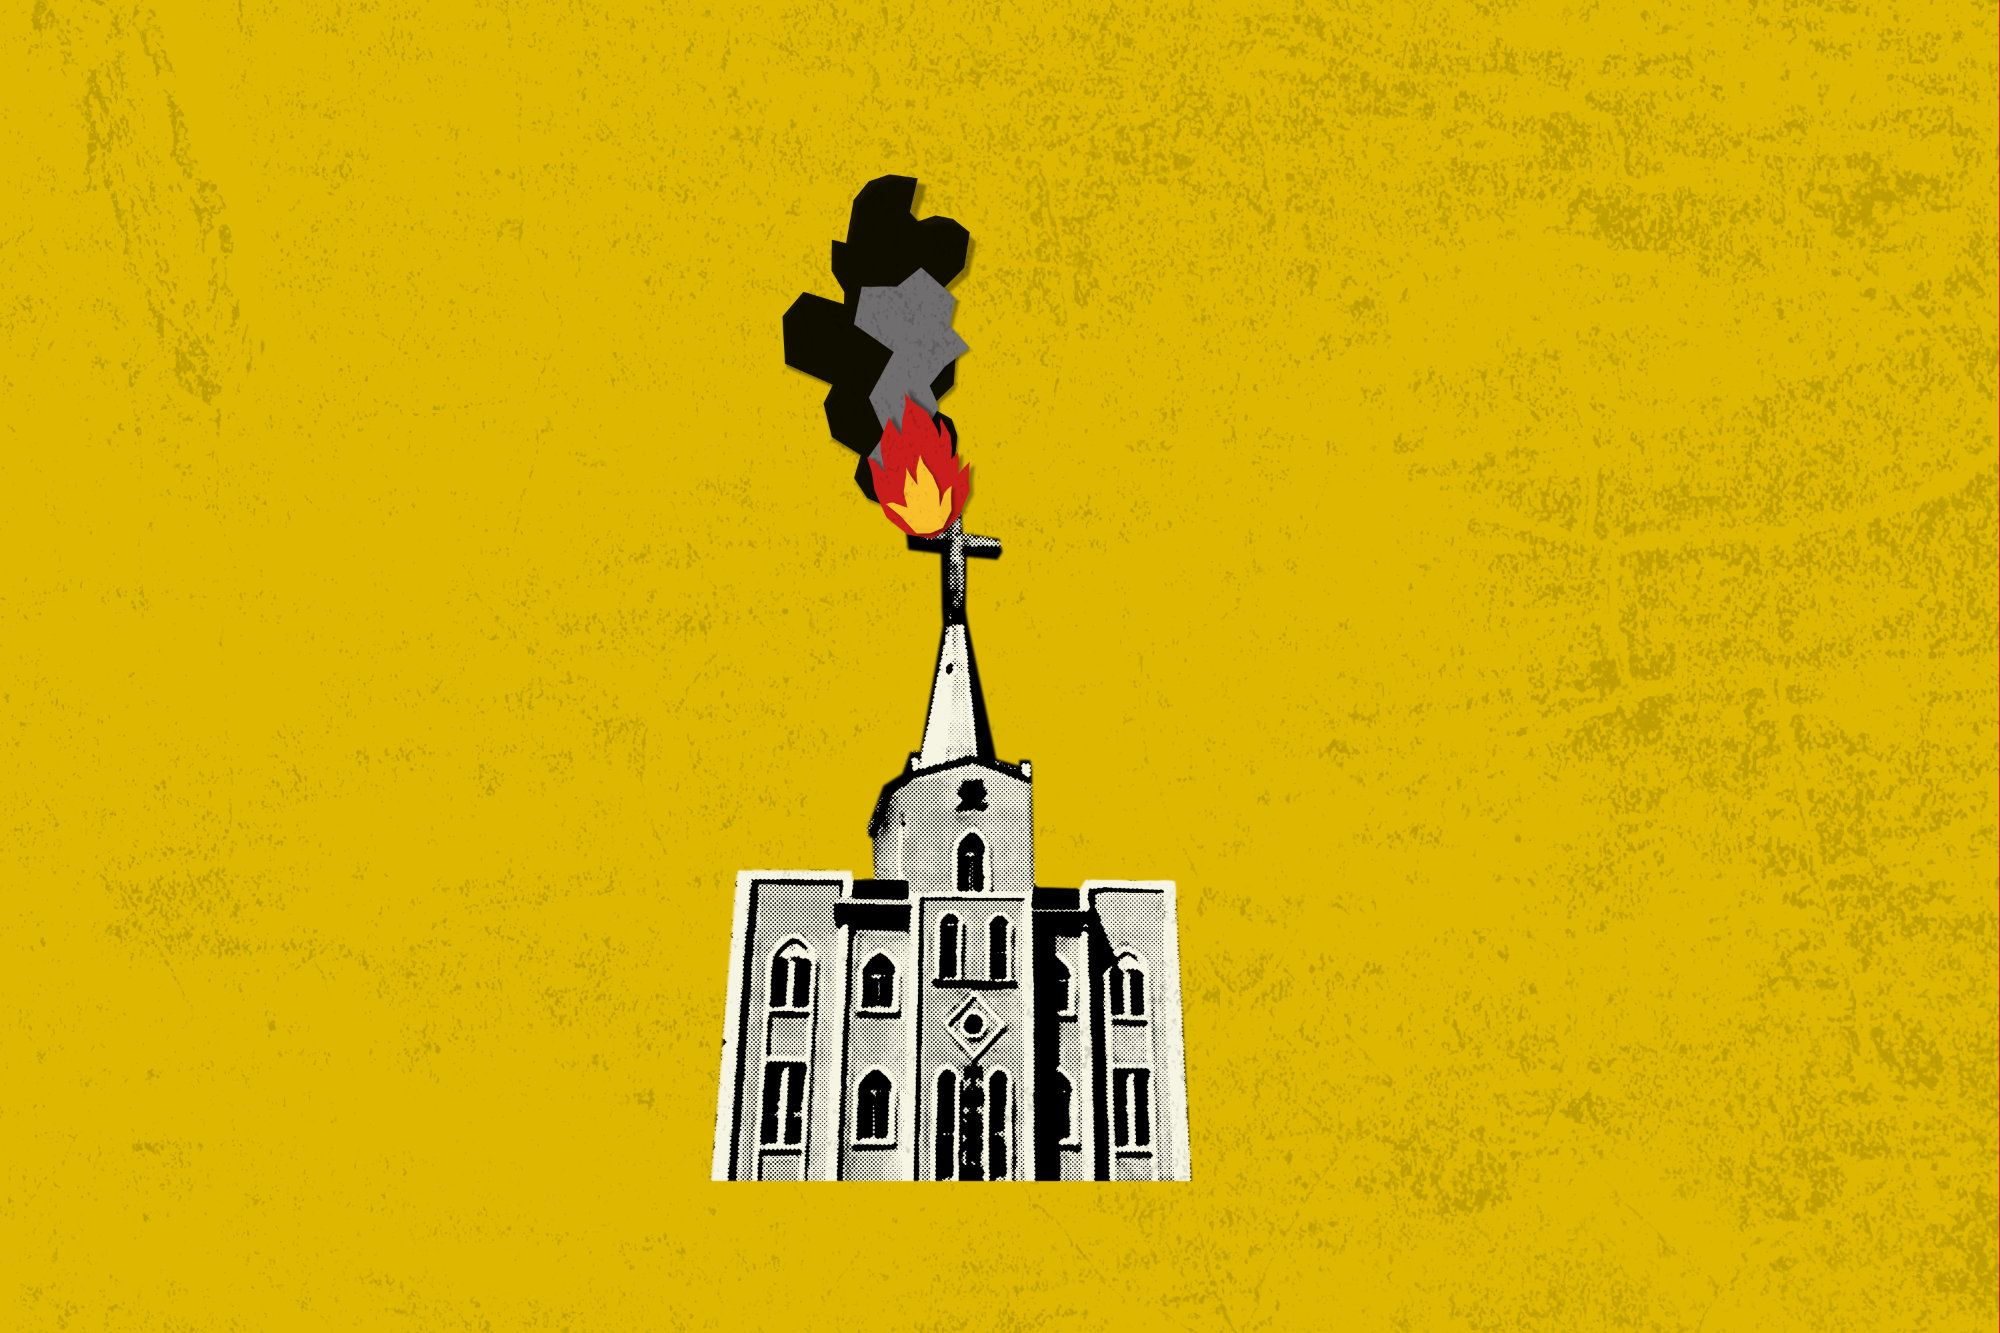 Illustration of a Church on fire.